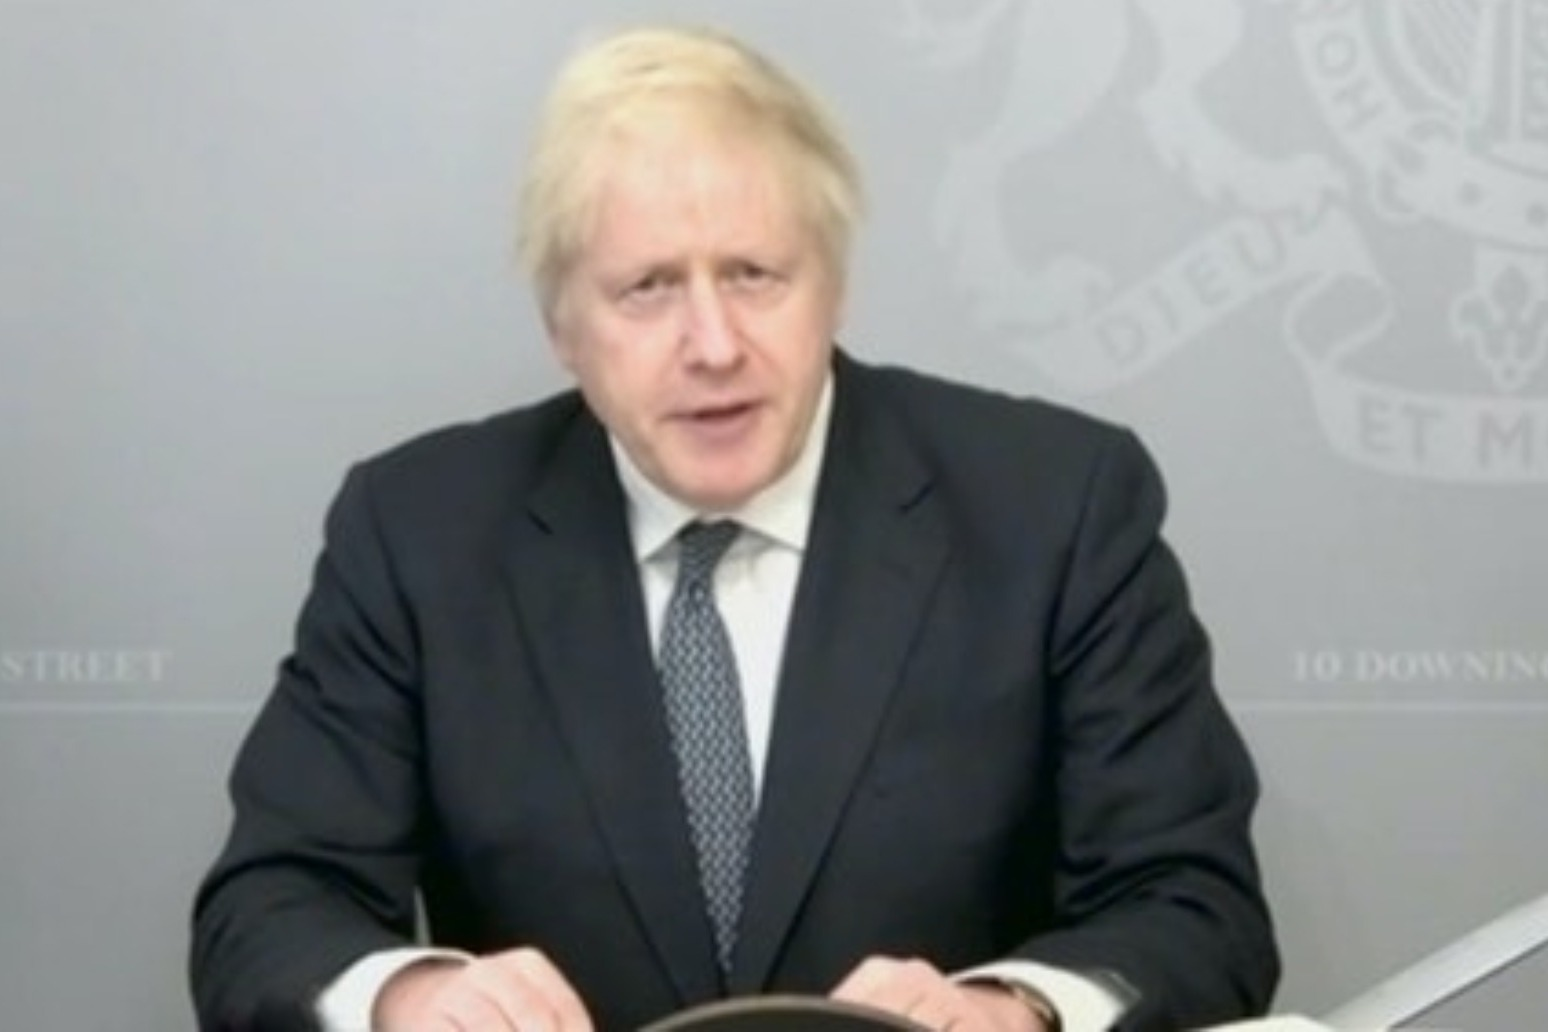 PM to outline post-lockdown plan for strengthened tiers and a limited Christmas